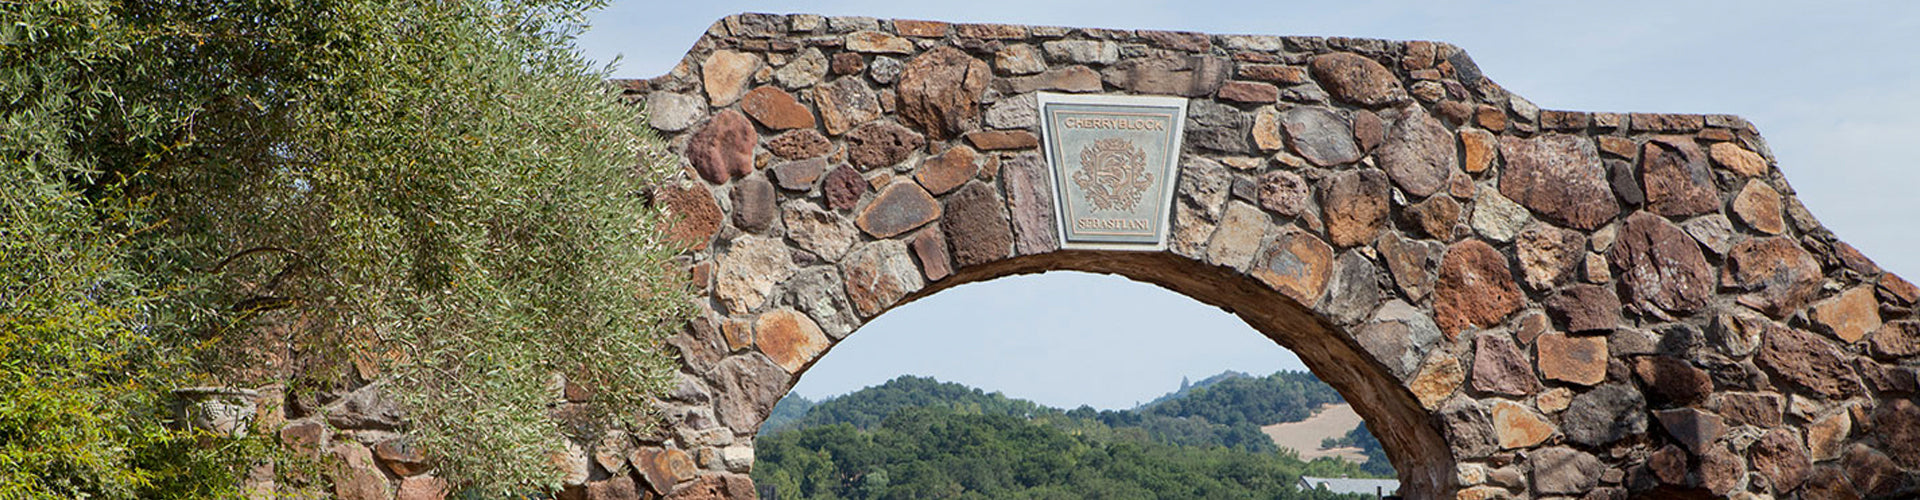 Sebastiani Vineyards Stone Entrance Archway